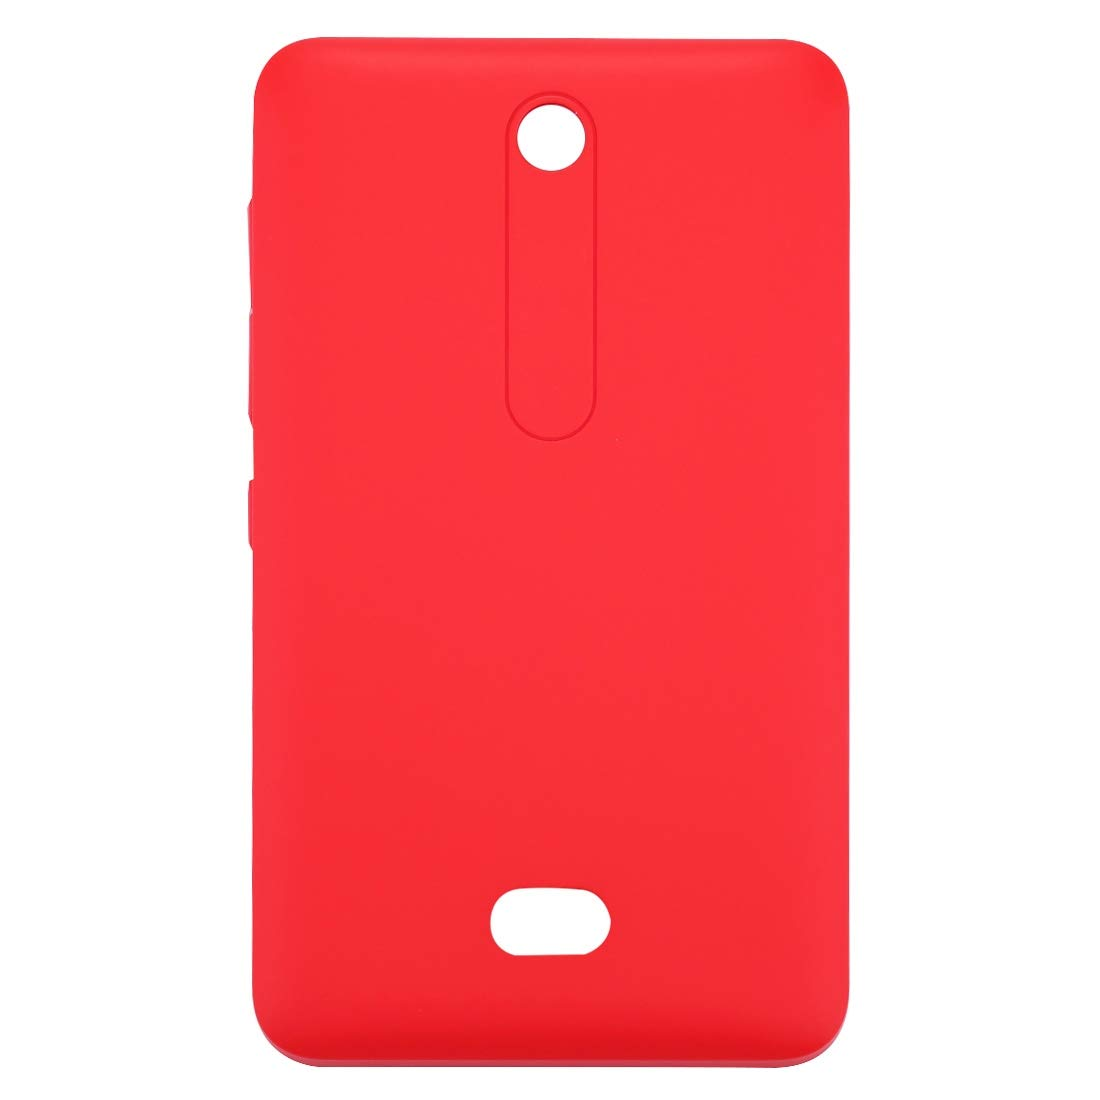 JUNXI Phone Battery Back Cover for Nokia Asha 501 (Black) Soft and Simple (Color : Red) by JUNXI